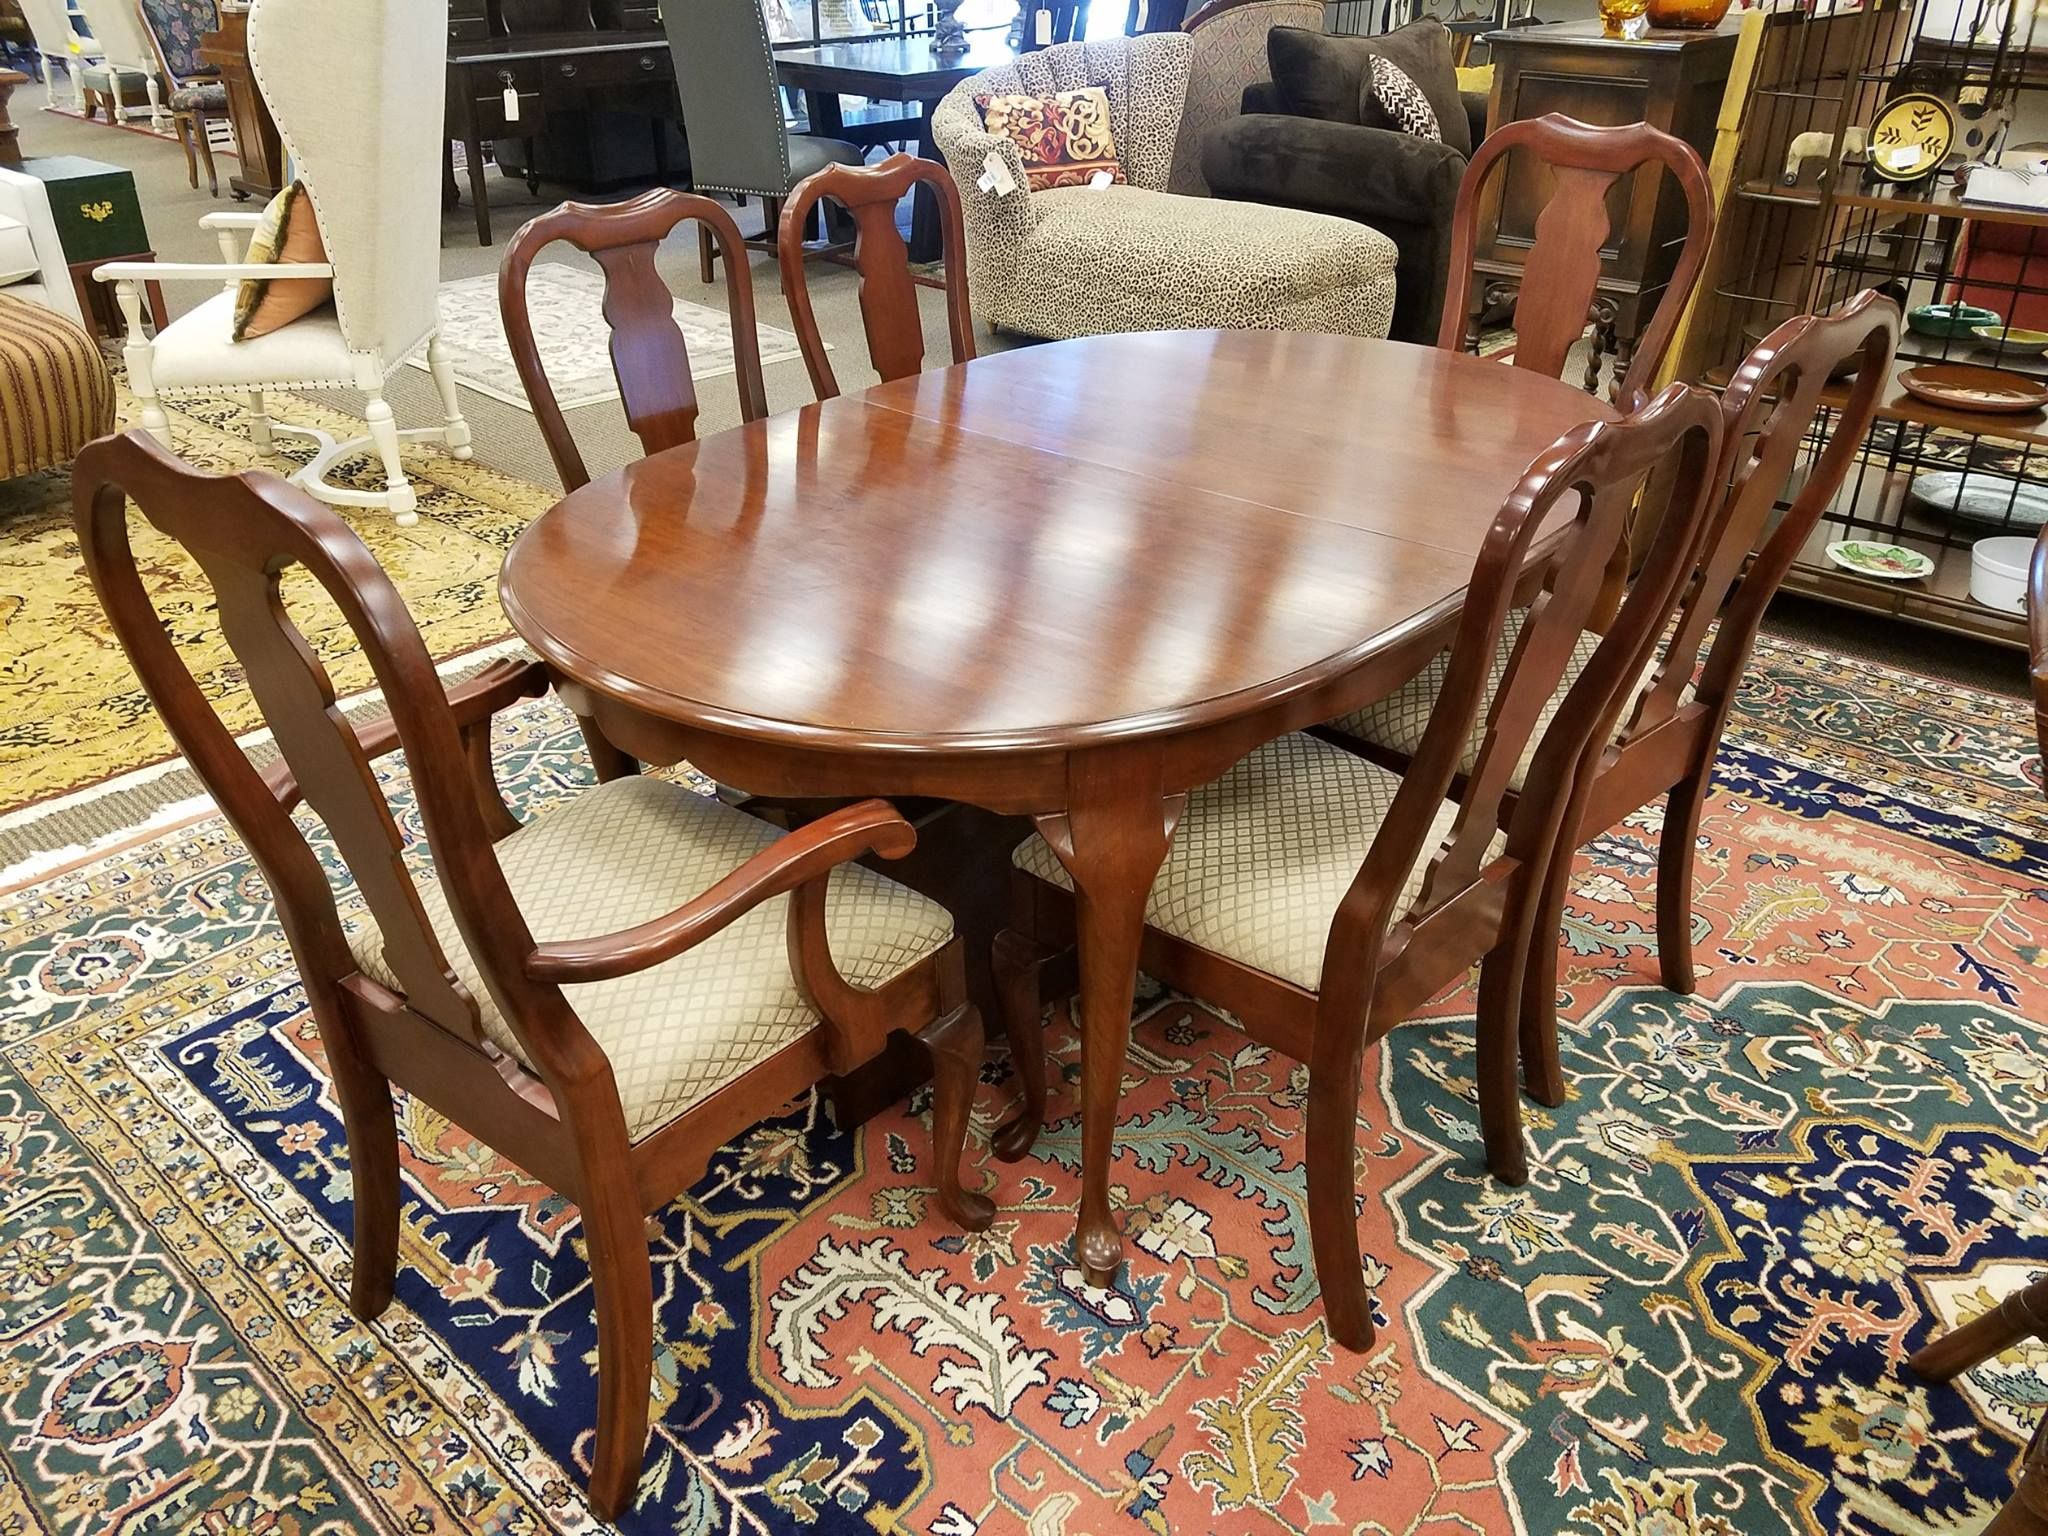 This Pennsylvania House Dining Table Is 499 Which Includes A Set